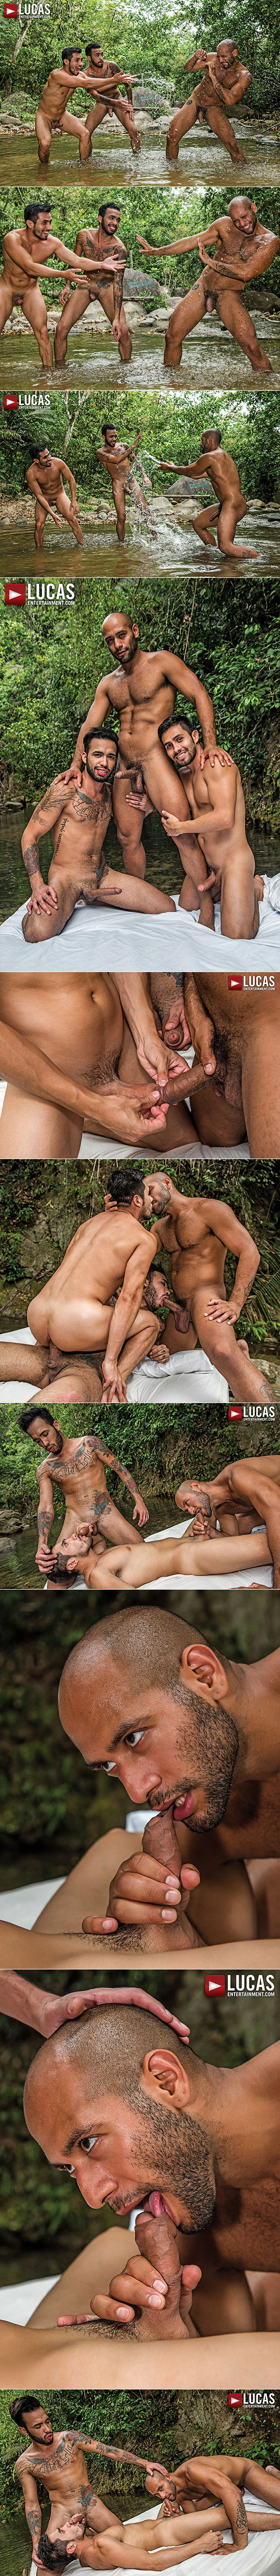 "Lucas Entertainment: Leo Forte, Derek Allan, And Raymer's bareback threesome in ""Foreskin Fanatics"""